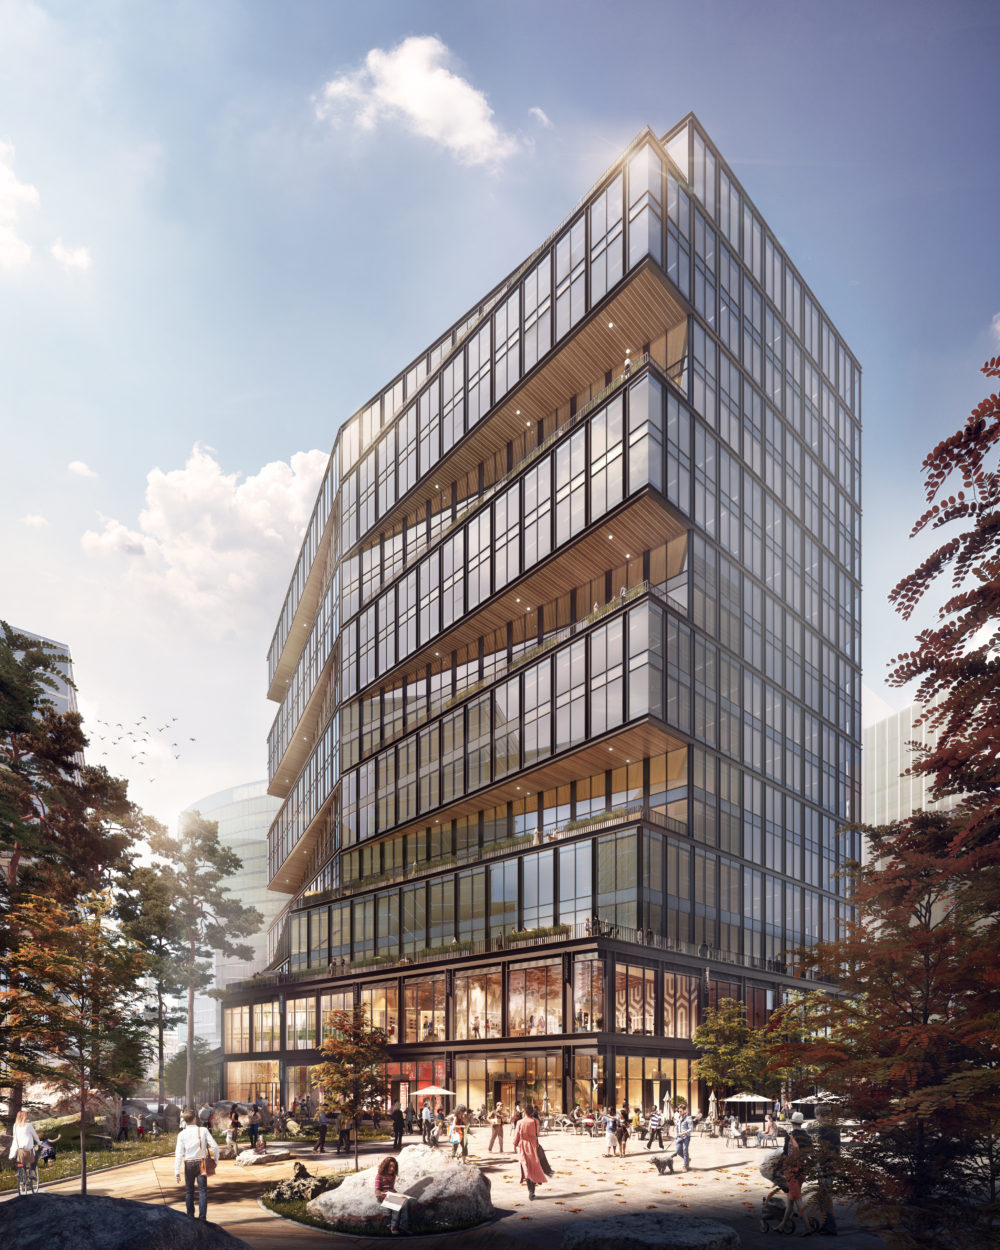 Amazon Leases 430,000 square feet of office space in Boston's